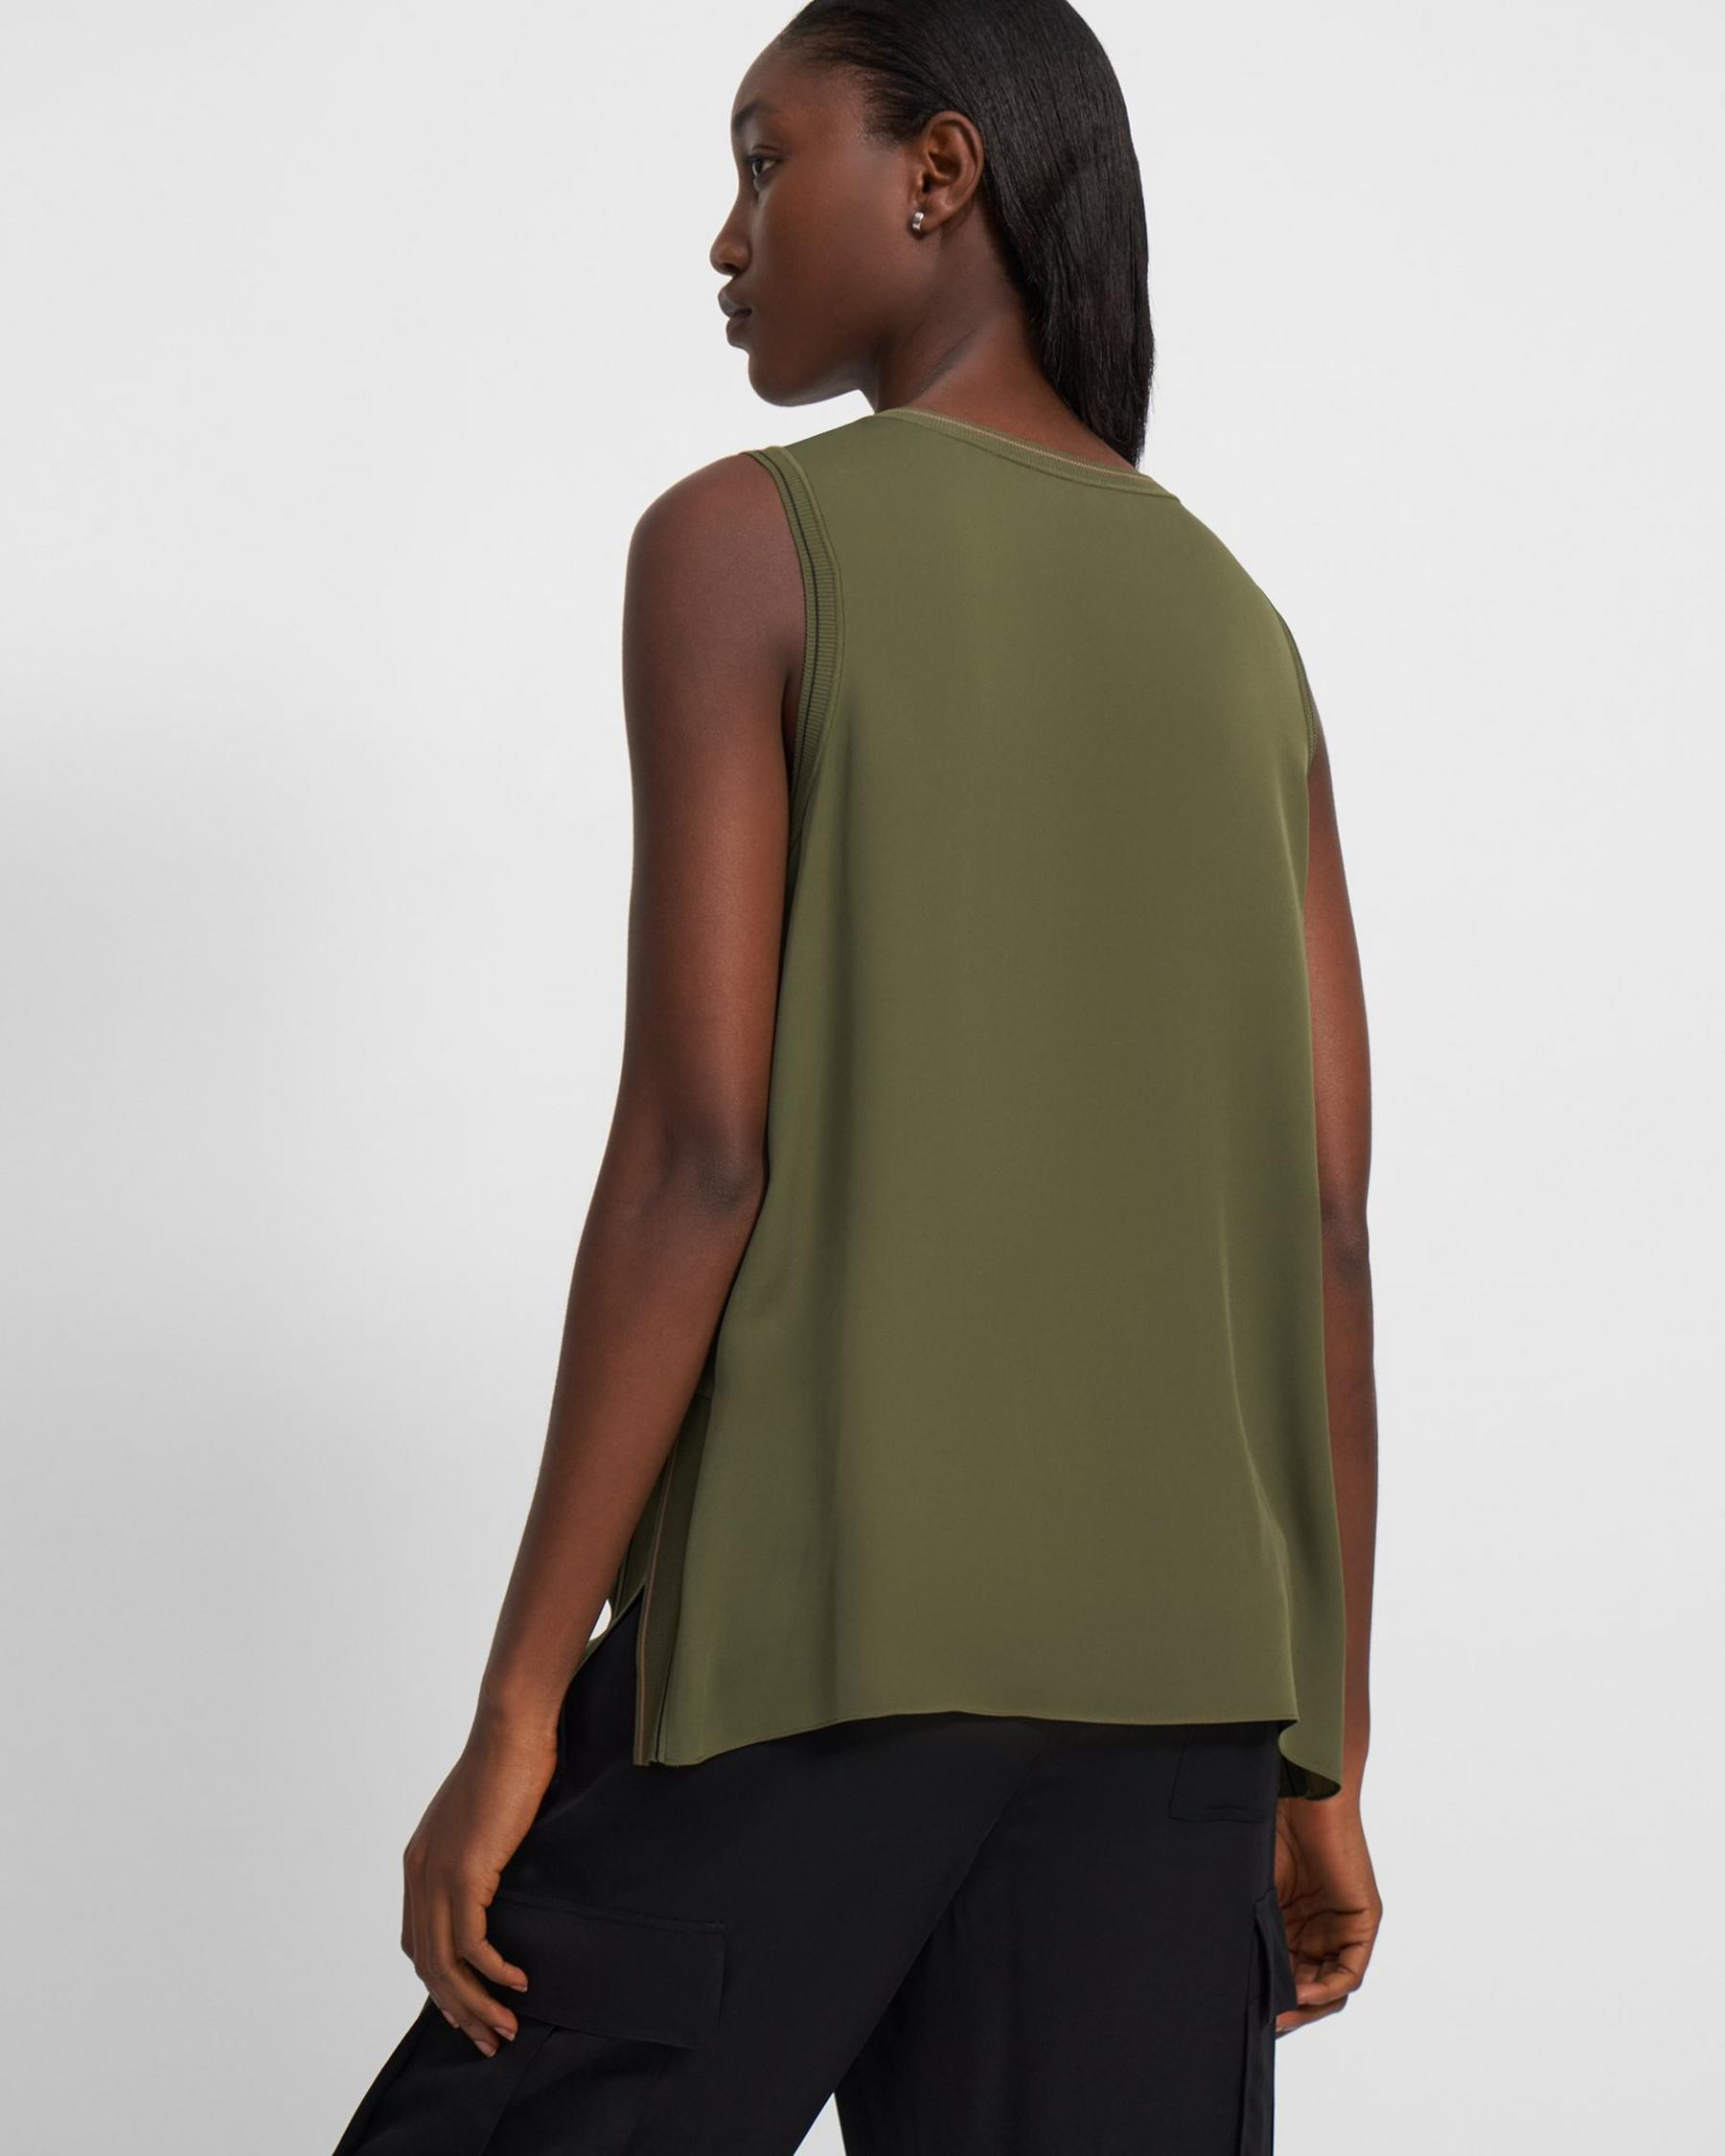 Combo Shell Top in Silk 2